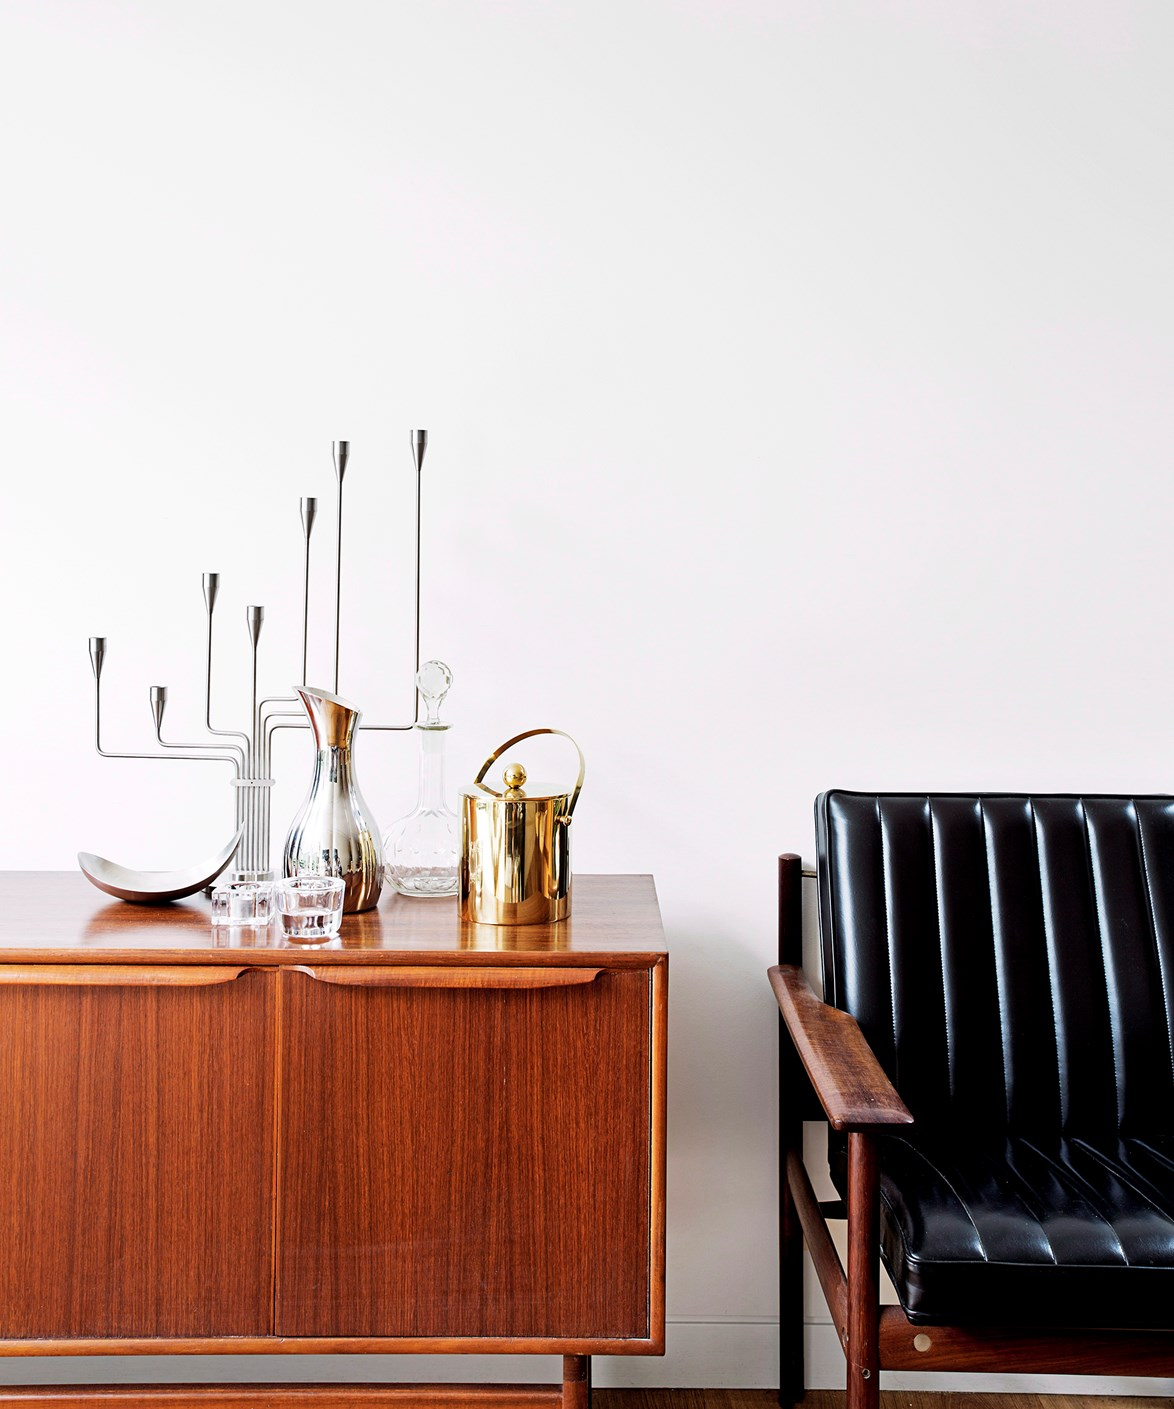 Vintage candleholders in hourglass shapes – a 1950s motif – are combined with classic Danish furniture and a brass ice bucket for a luxe mid-century touch. *Photo:* Felix Forest / bauersyndication.com.au